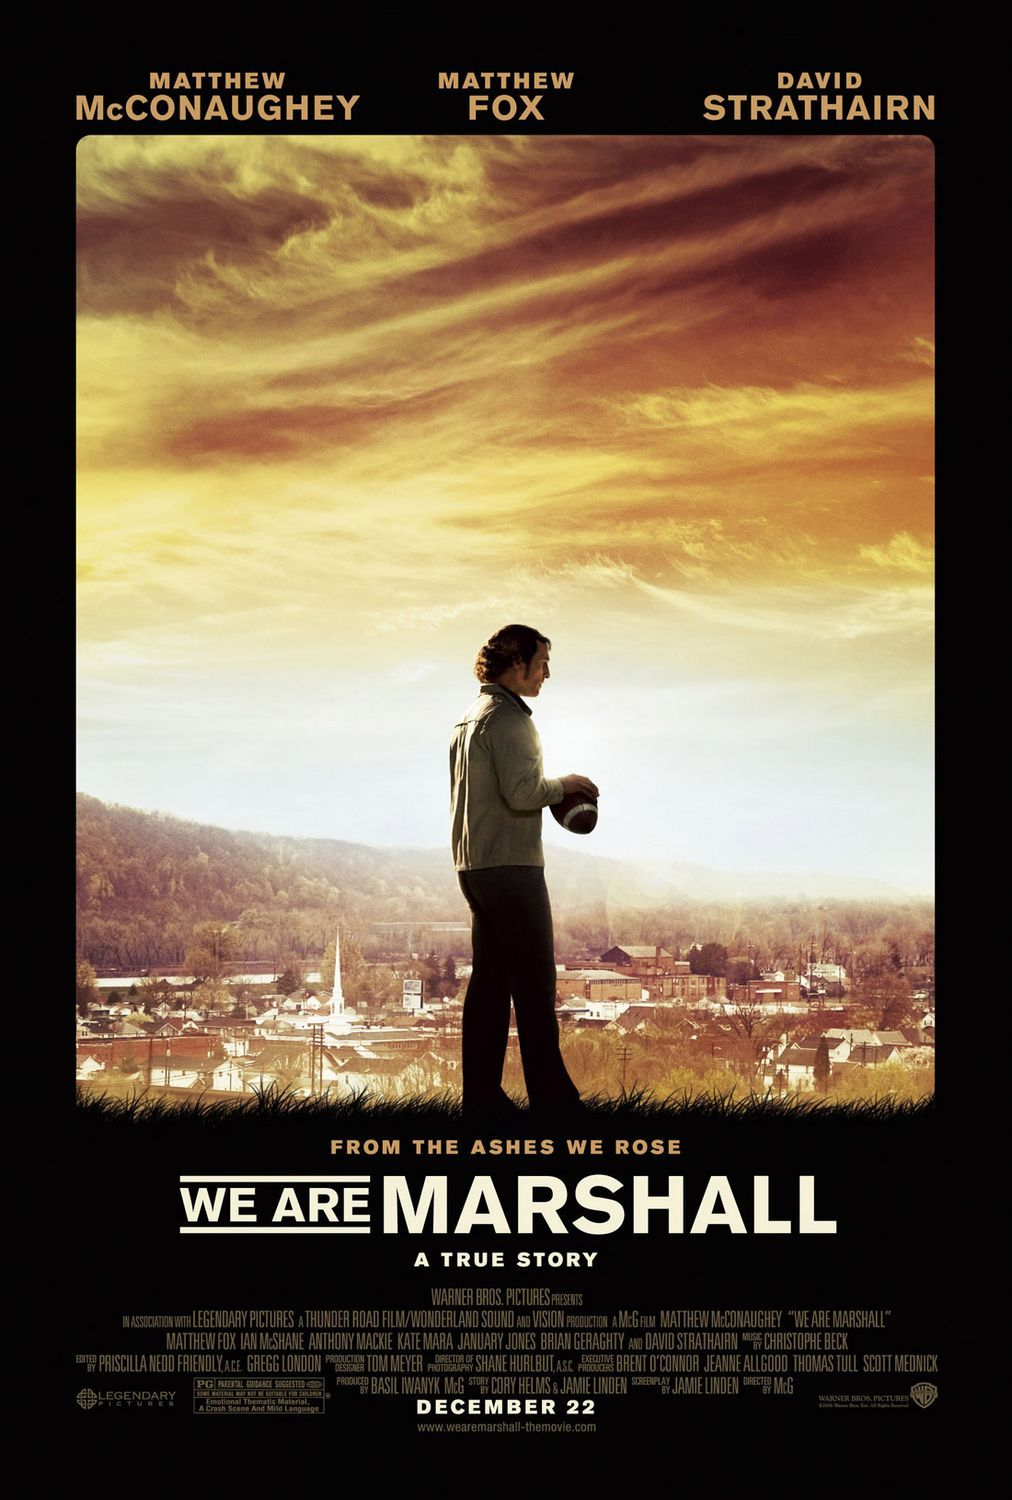 We Are Marshall (June) (With images) Marshall movie